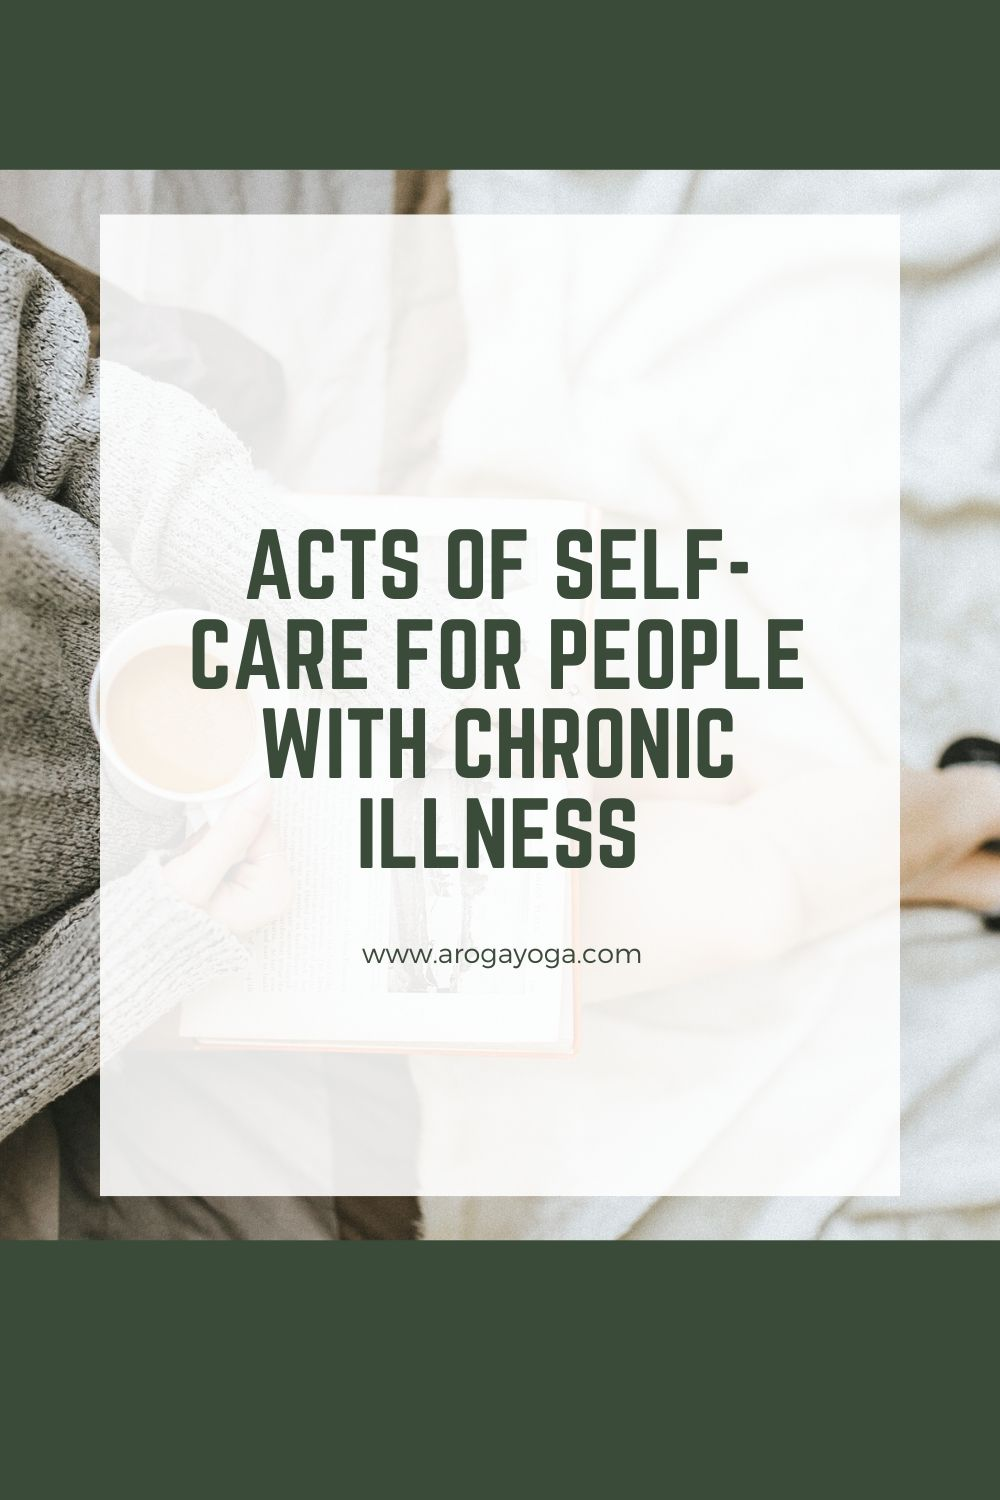 Acts of self care for people with chronic illness